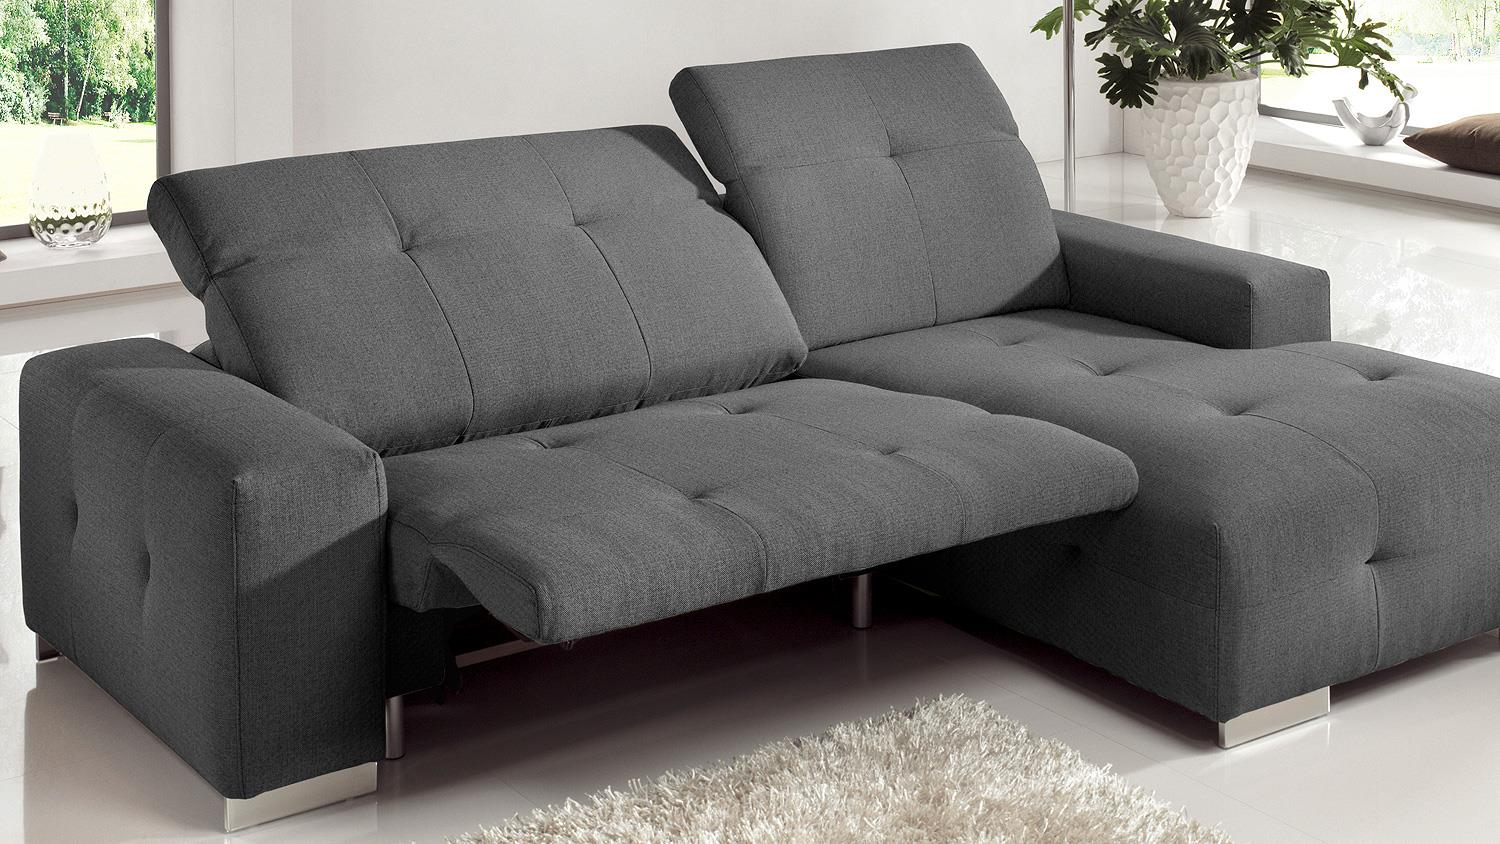 sofa mit relaxfunktion sofa elektrisch ausfahrbar sofa. Black Bedroom Furniture Sets. Home Design Ideas